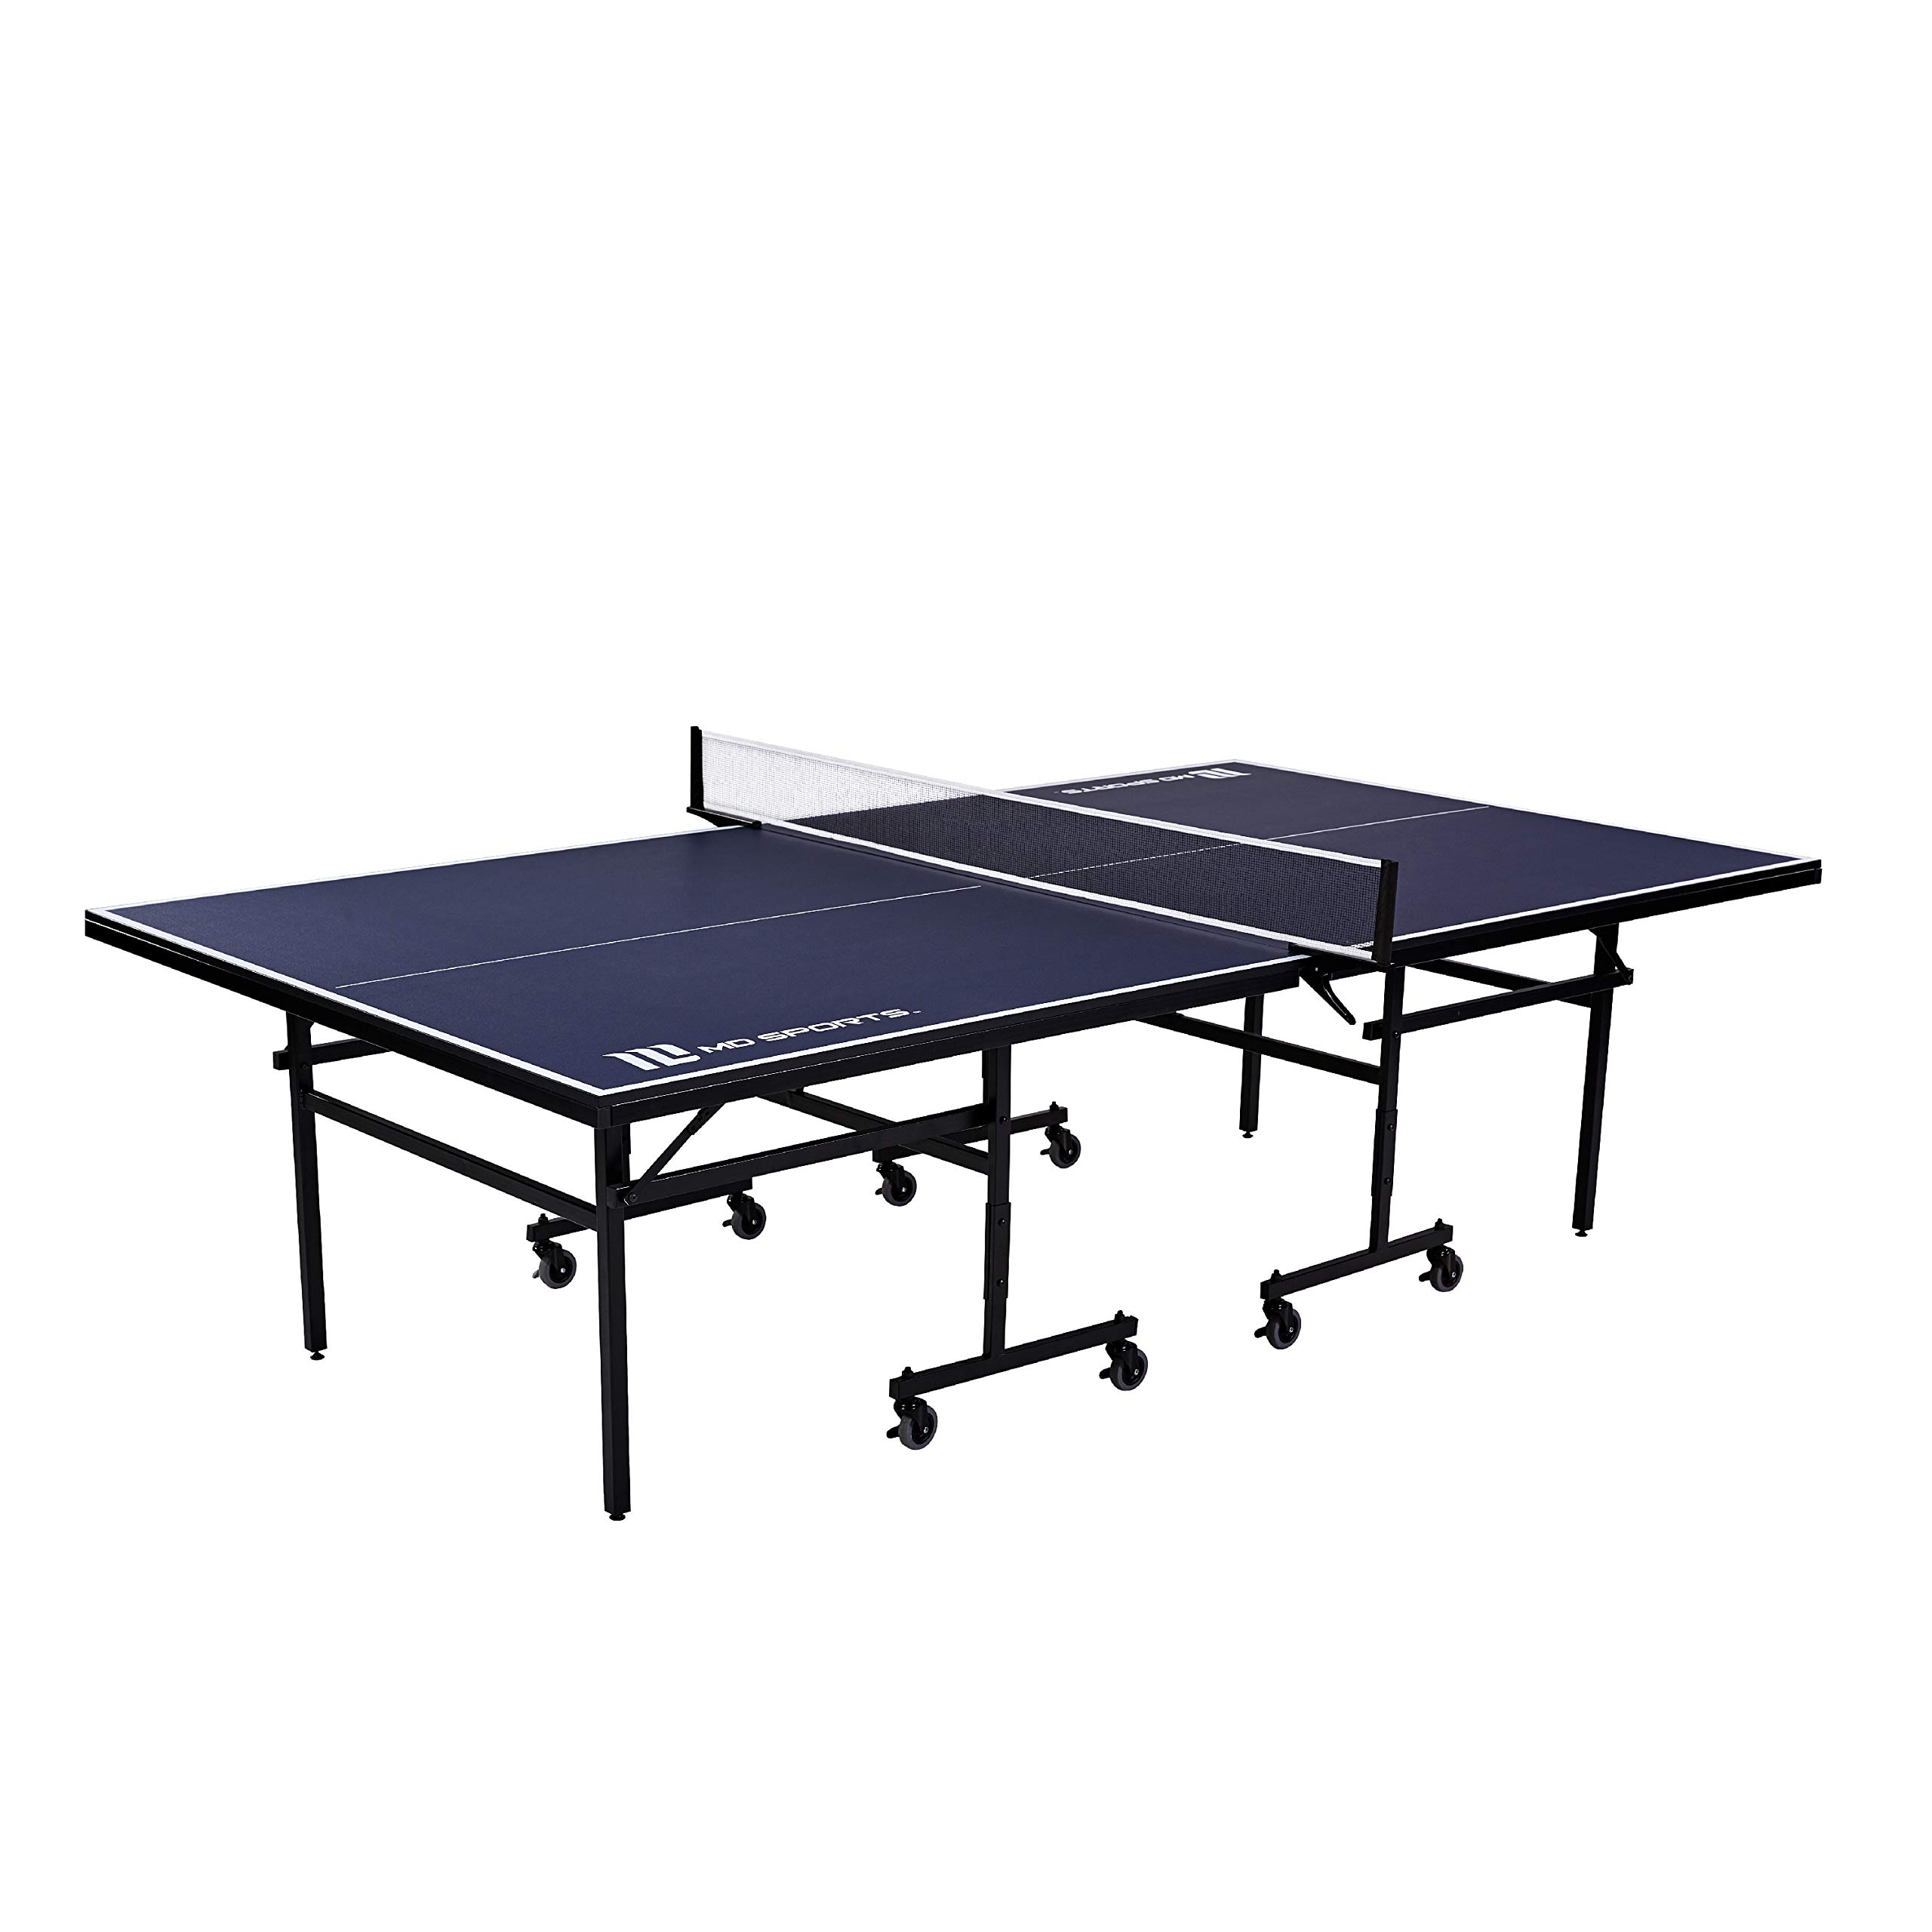 Ping Pong and Table Tennis Game Set, Regulation Size - Indoor, Foldable Tennis Tables with Retractable Net and Wheels for Simple Portability, Storage - Games for Home, Arcade, Sports Bars